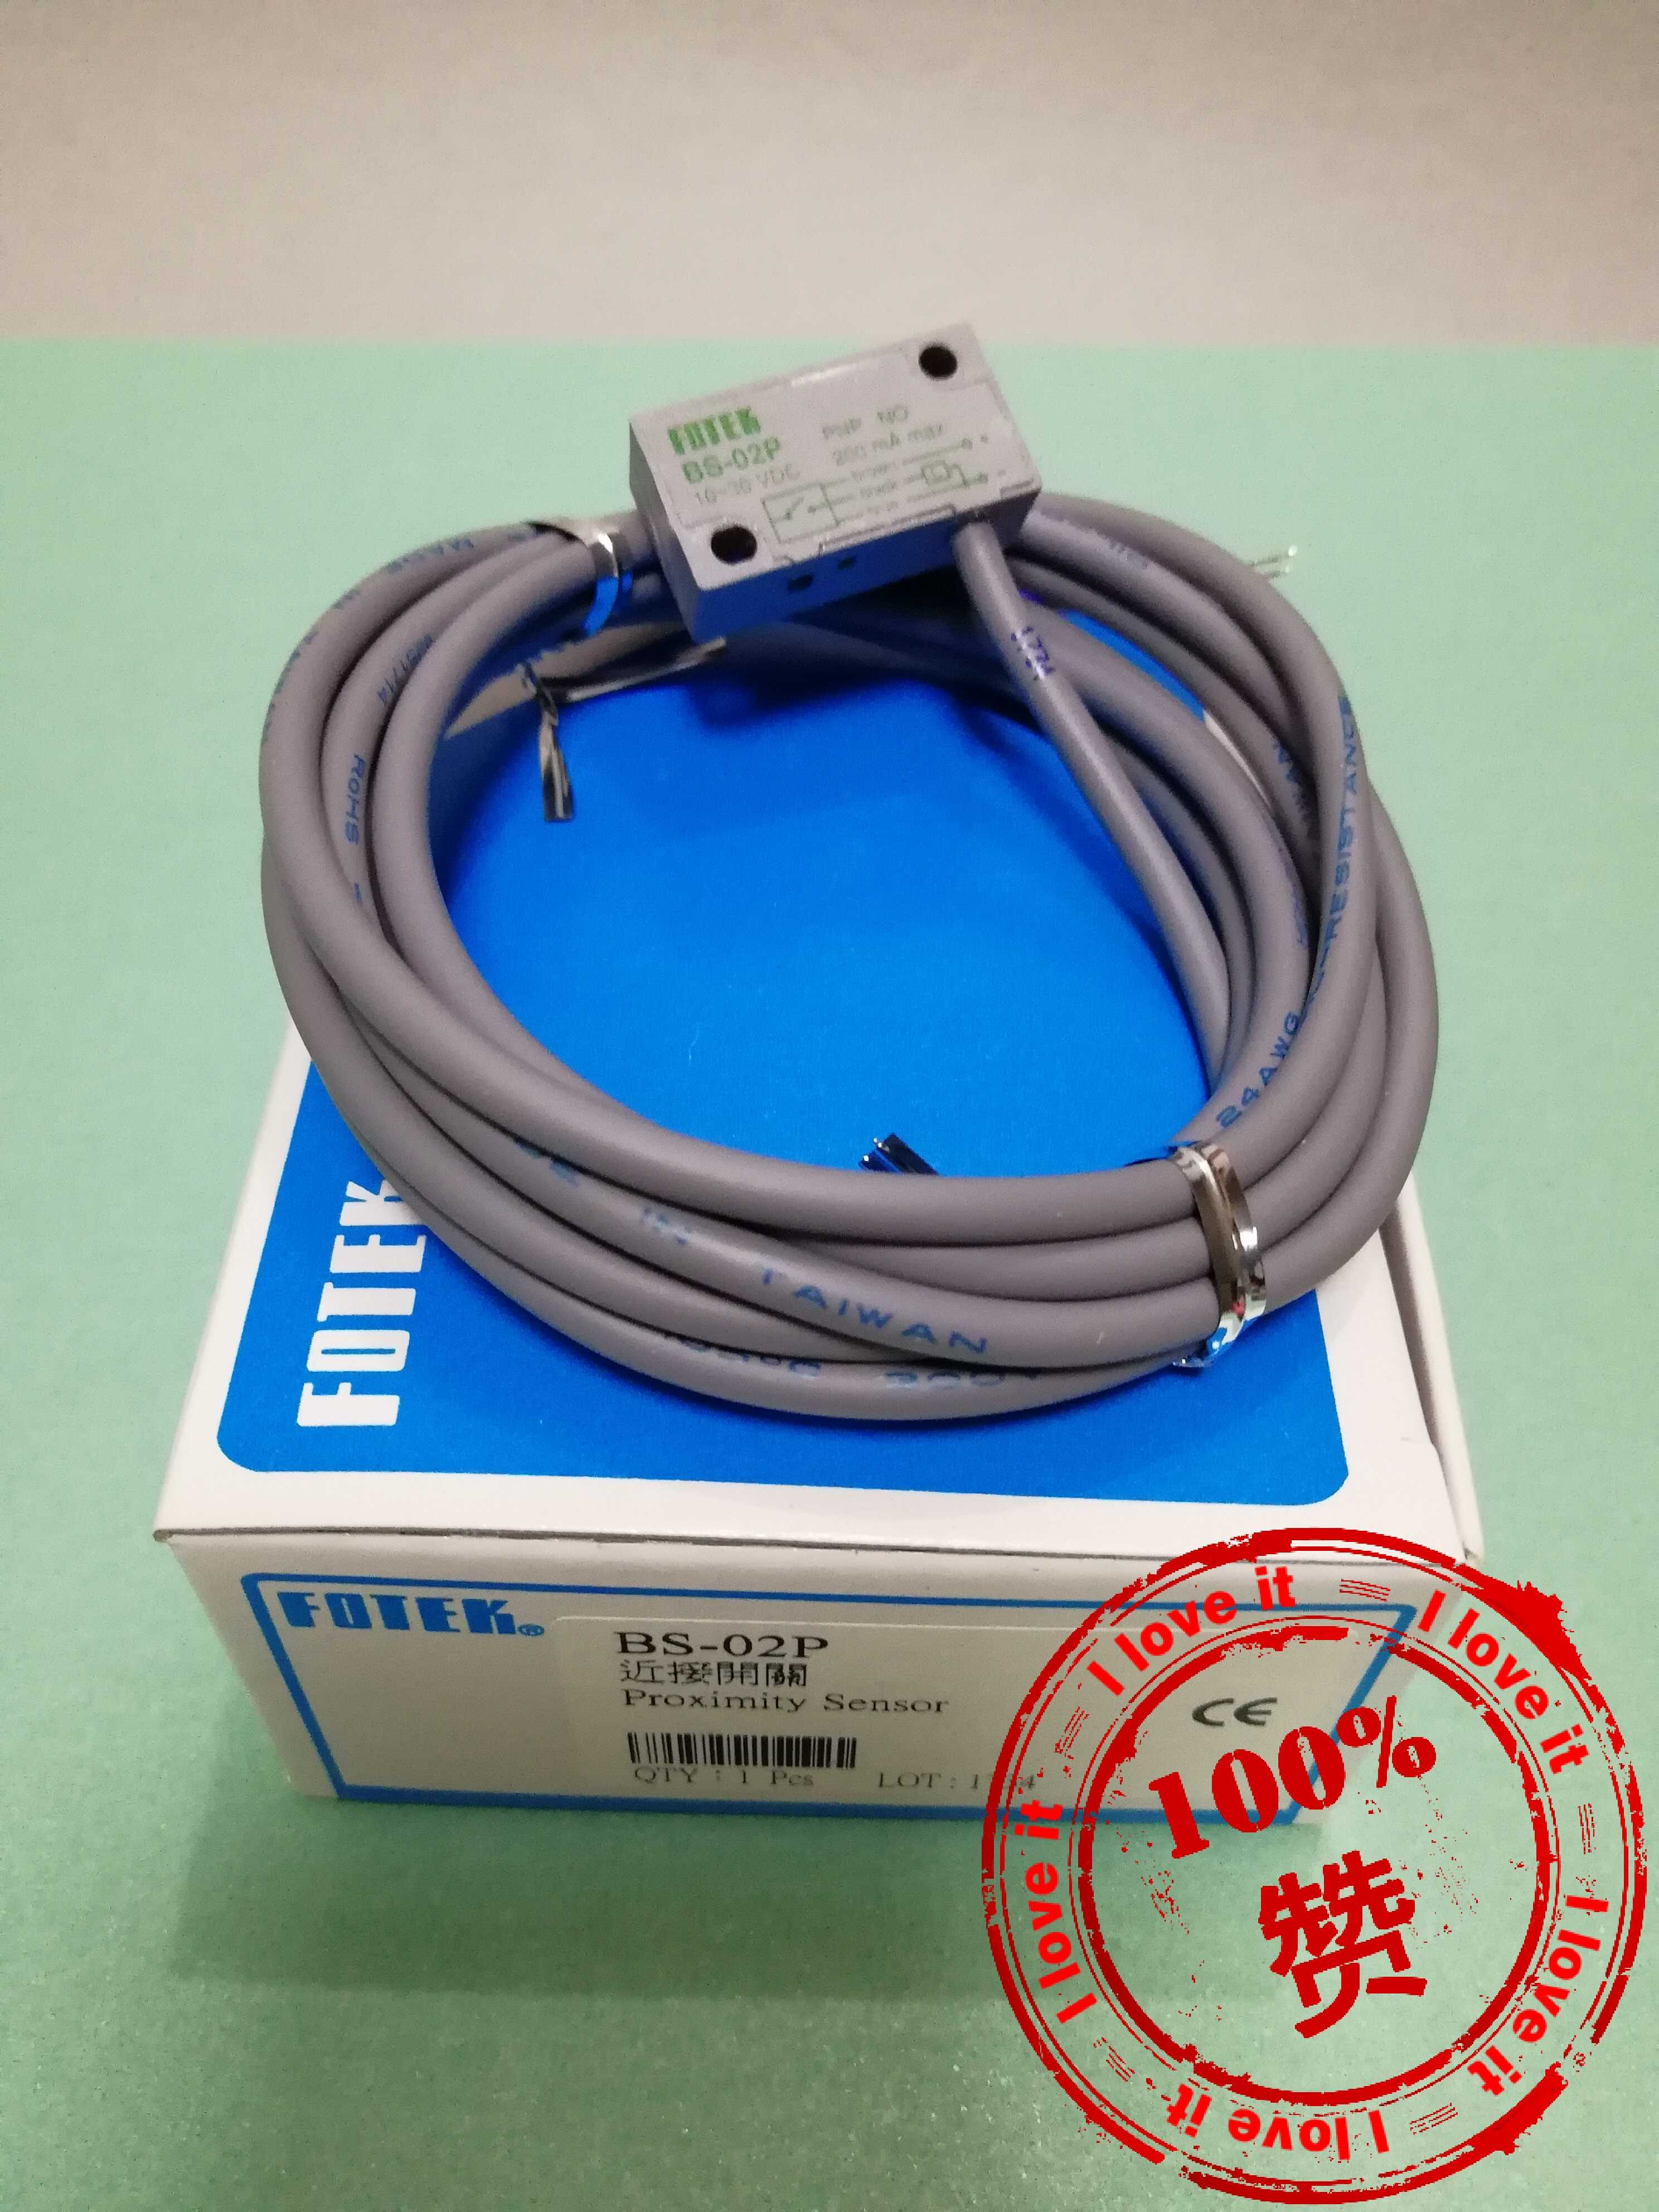 100 % Square Inductive Approach Switch BS-02P